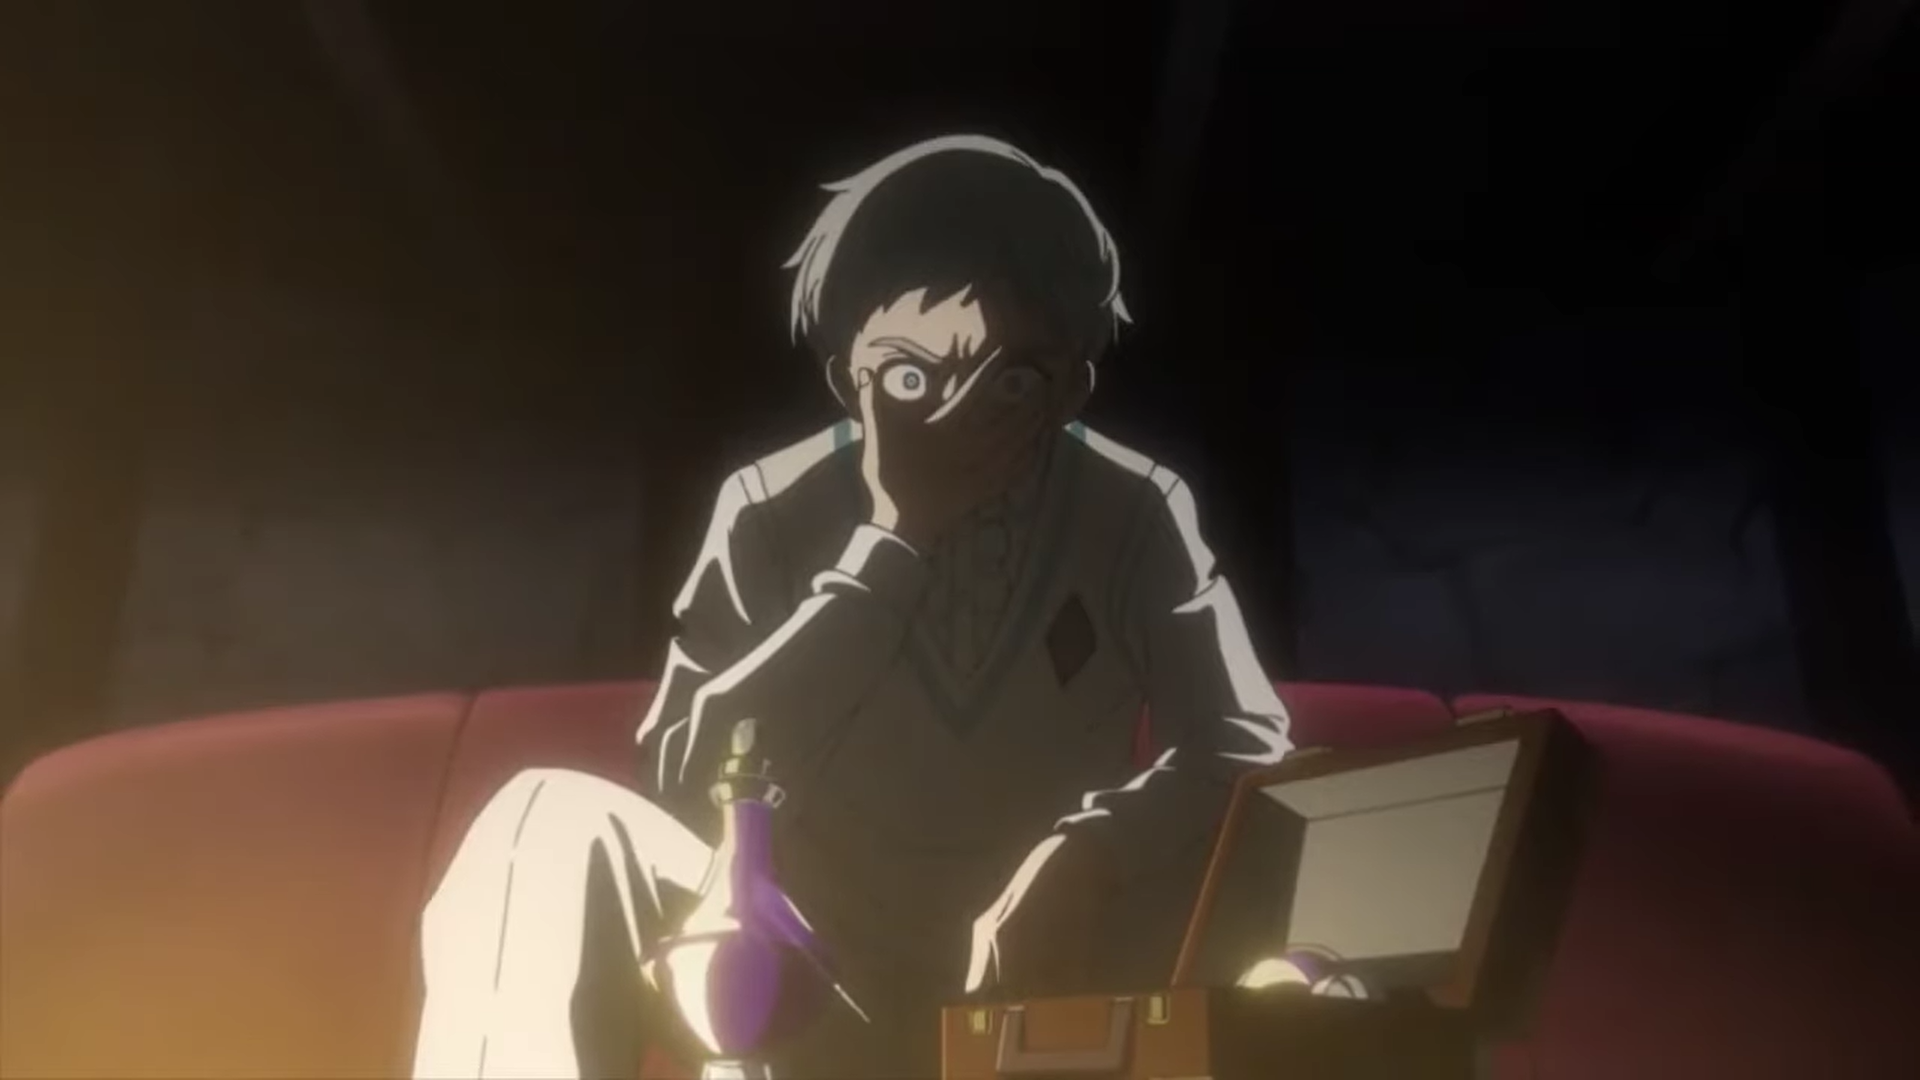 The Promised Neverland Anime Season 2 Episode 9 Release date, release date, countdown and where to watch English Sub online